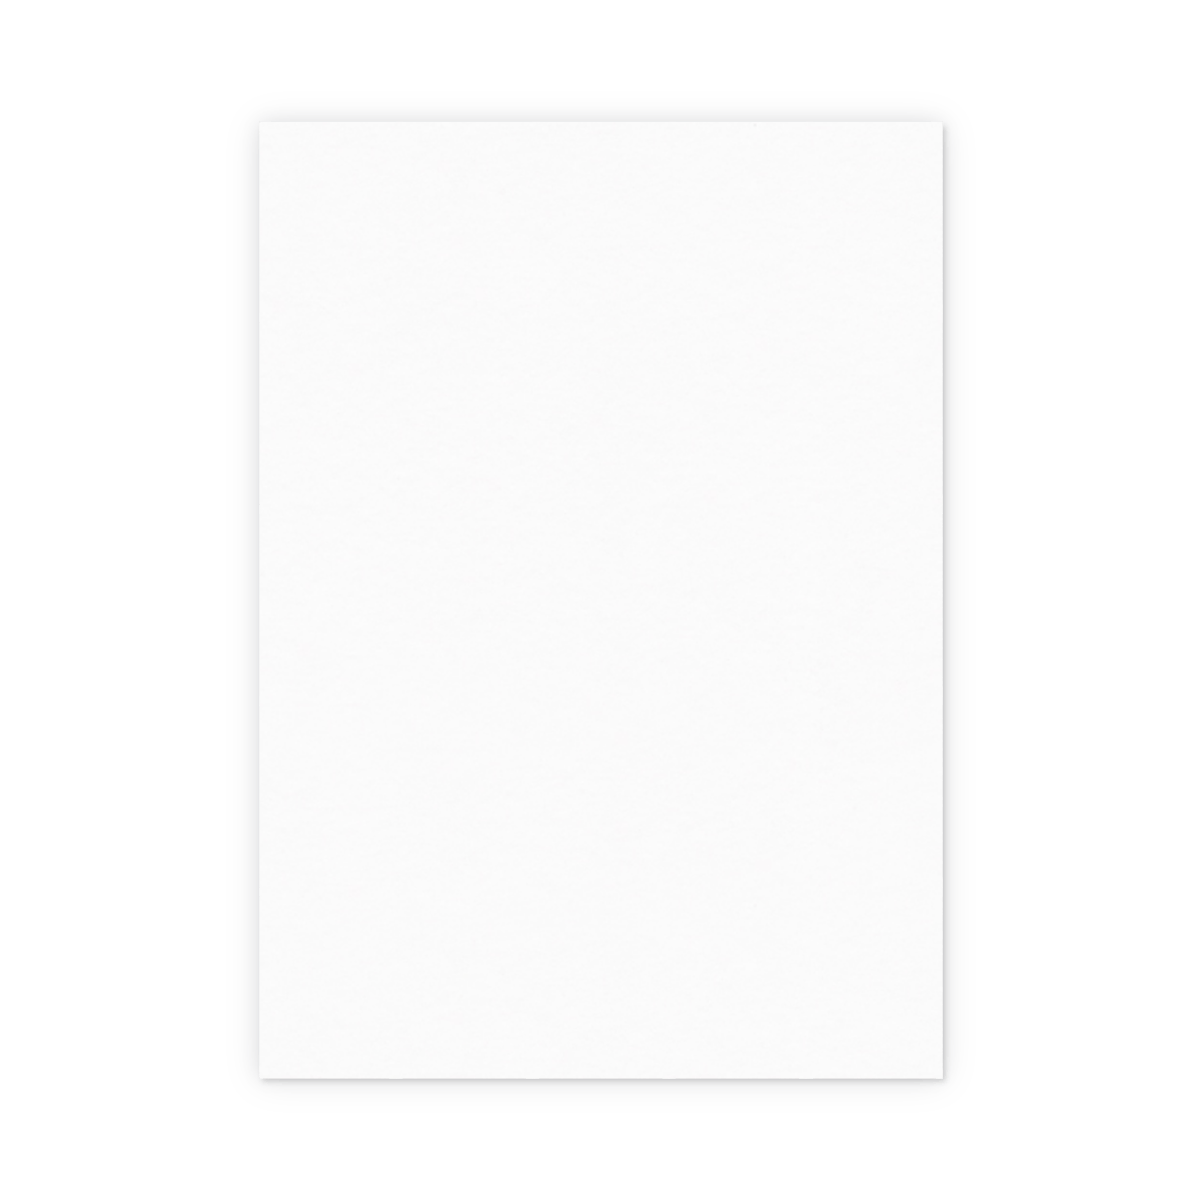 Https%3a%2f%2fwww.papier.com%2fproduct image%2f34652%2f4%2fshapes colours eight 8666 back 1519912899.png?ixlib=rb 1.1